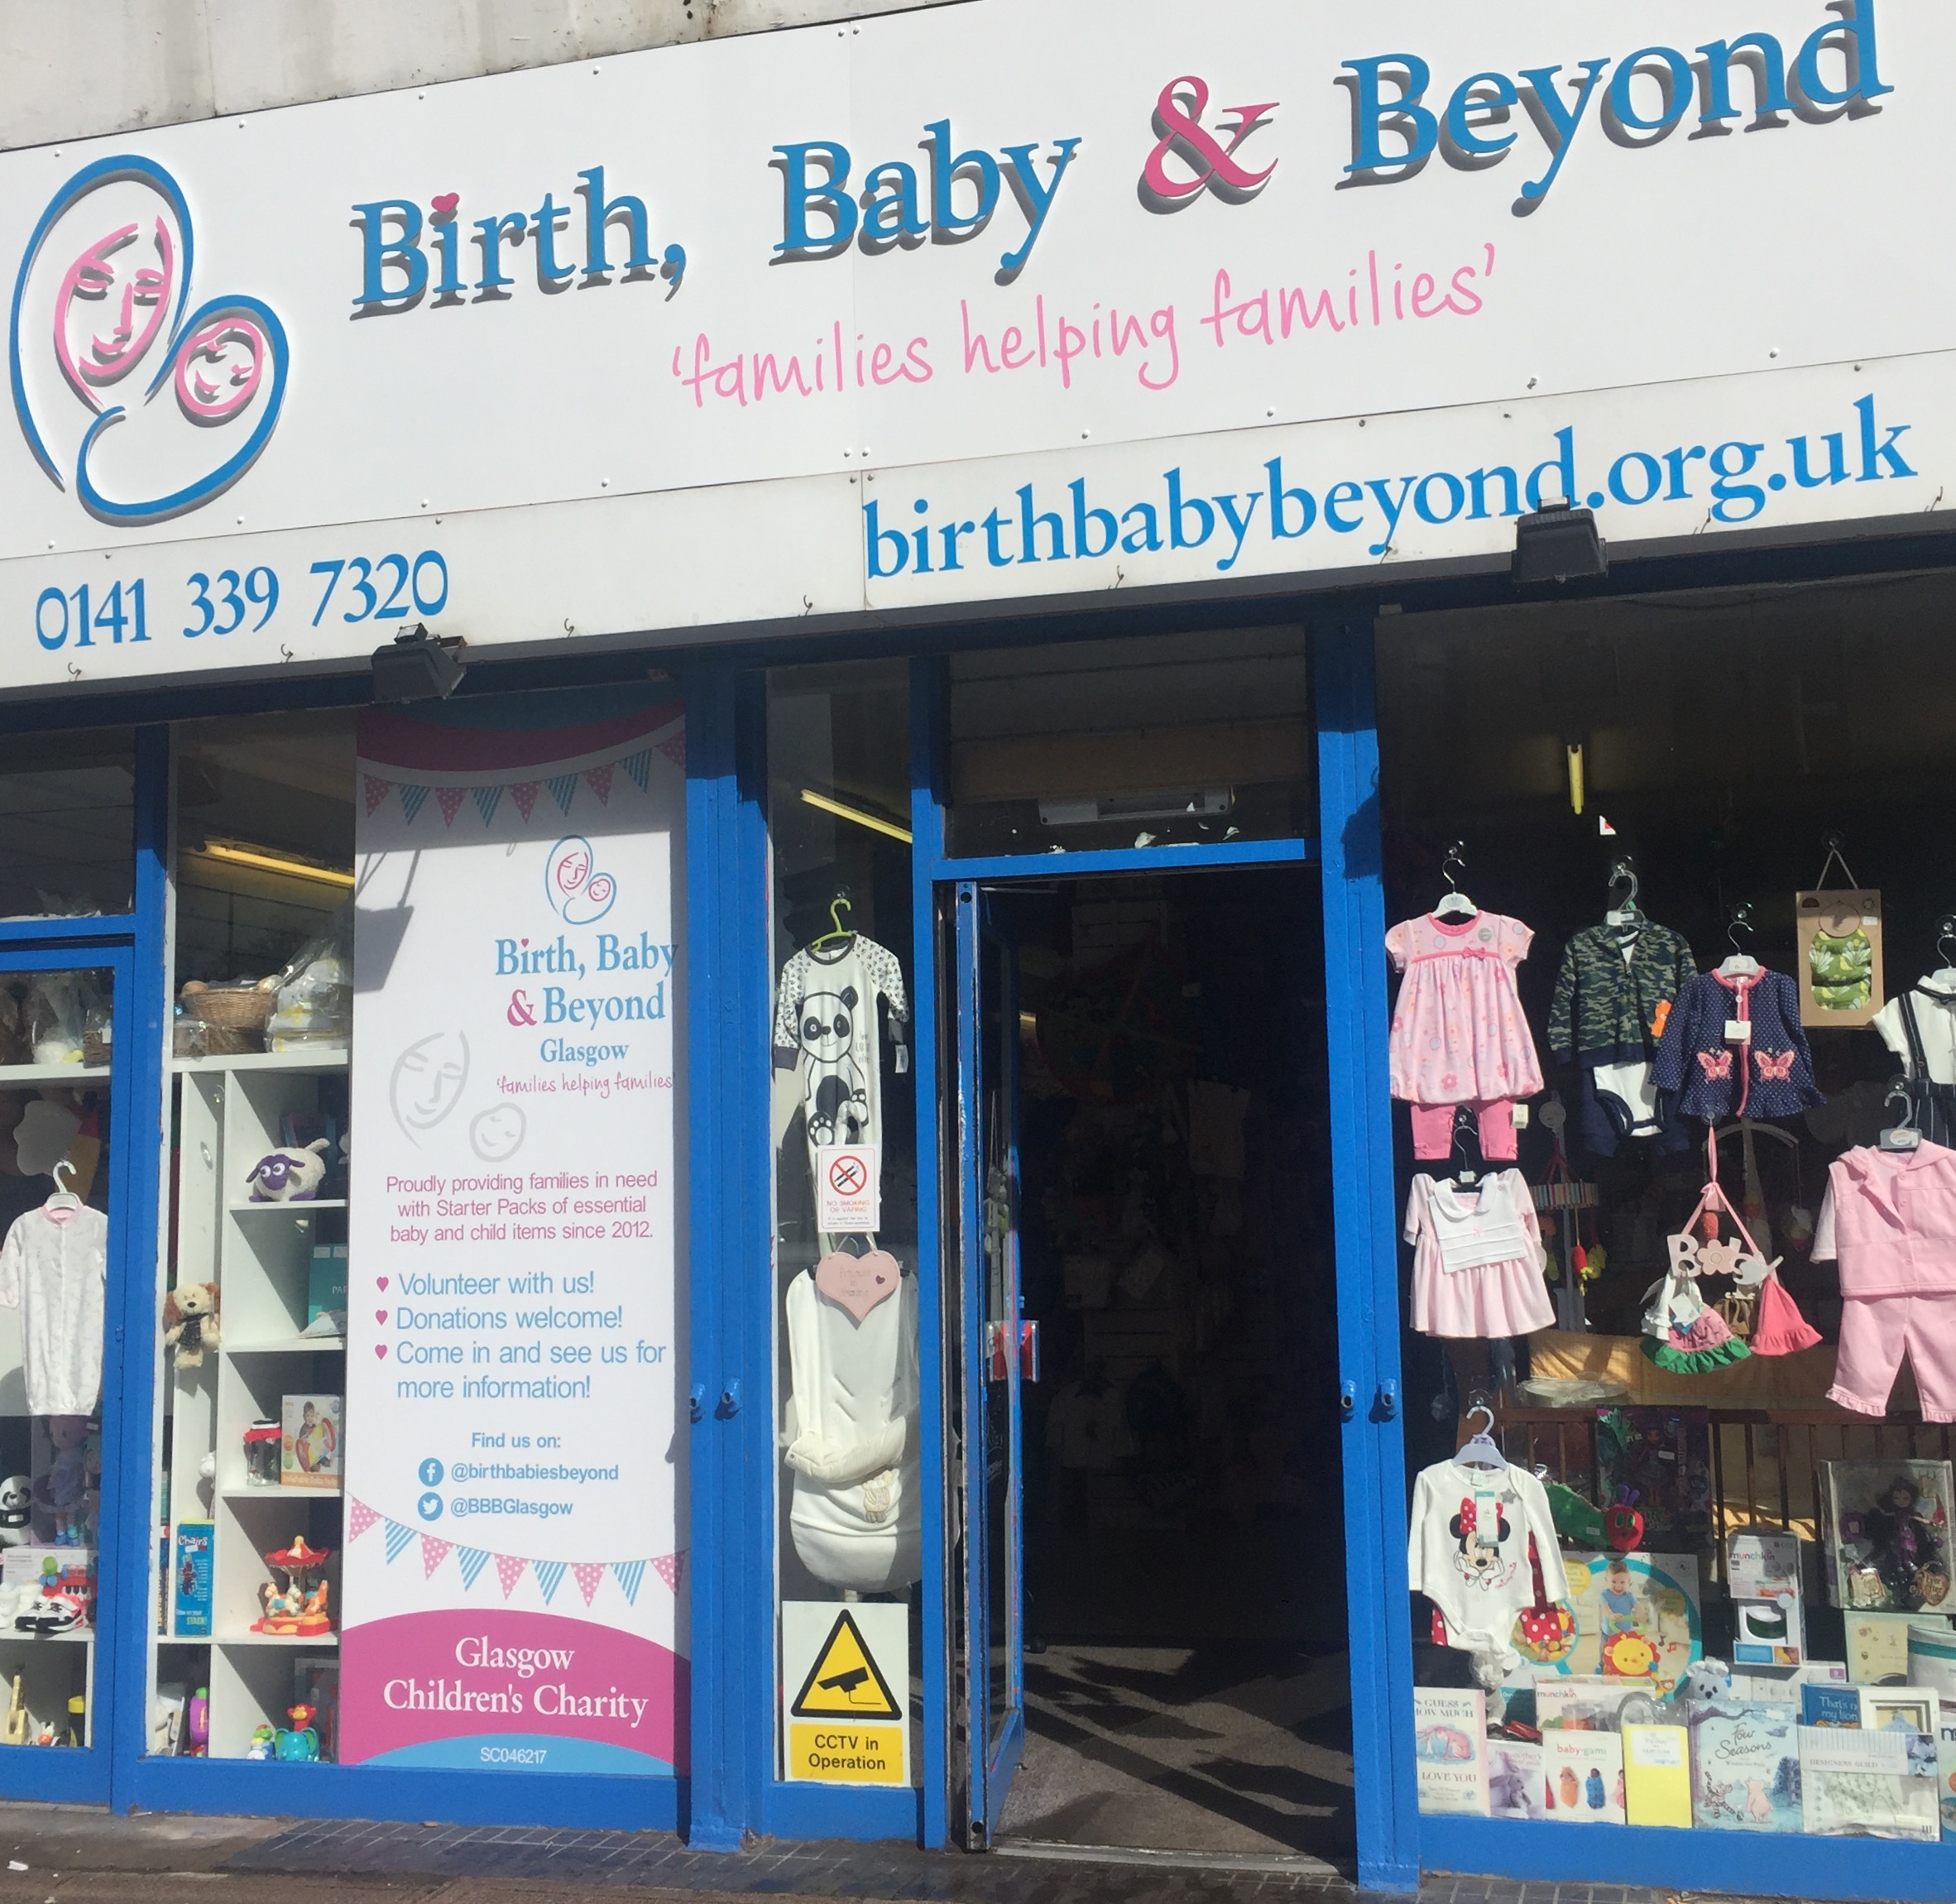 The Birth, Baby and Beyond shop